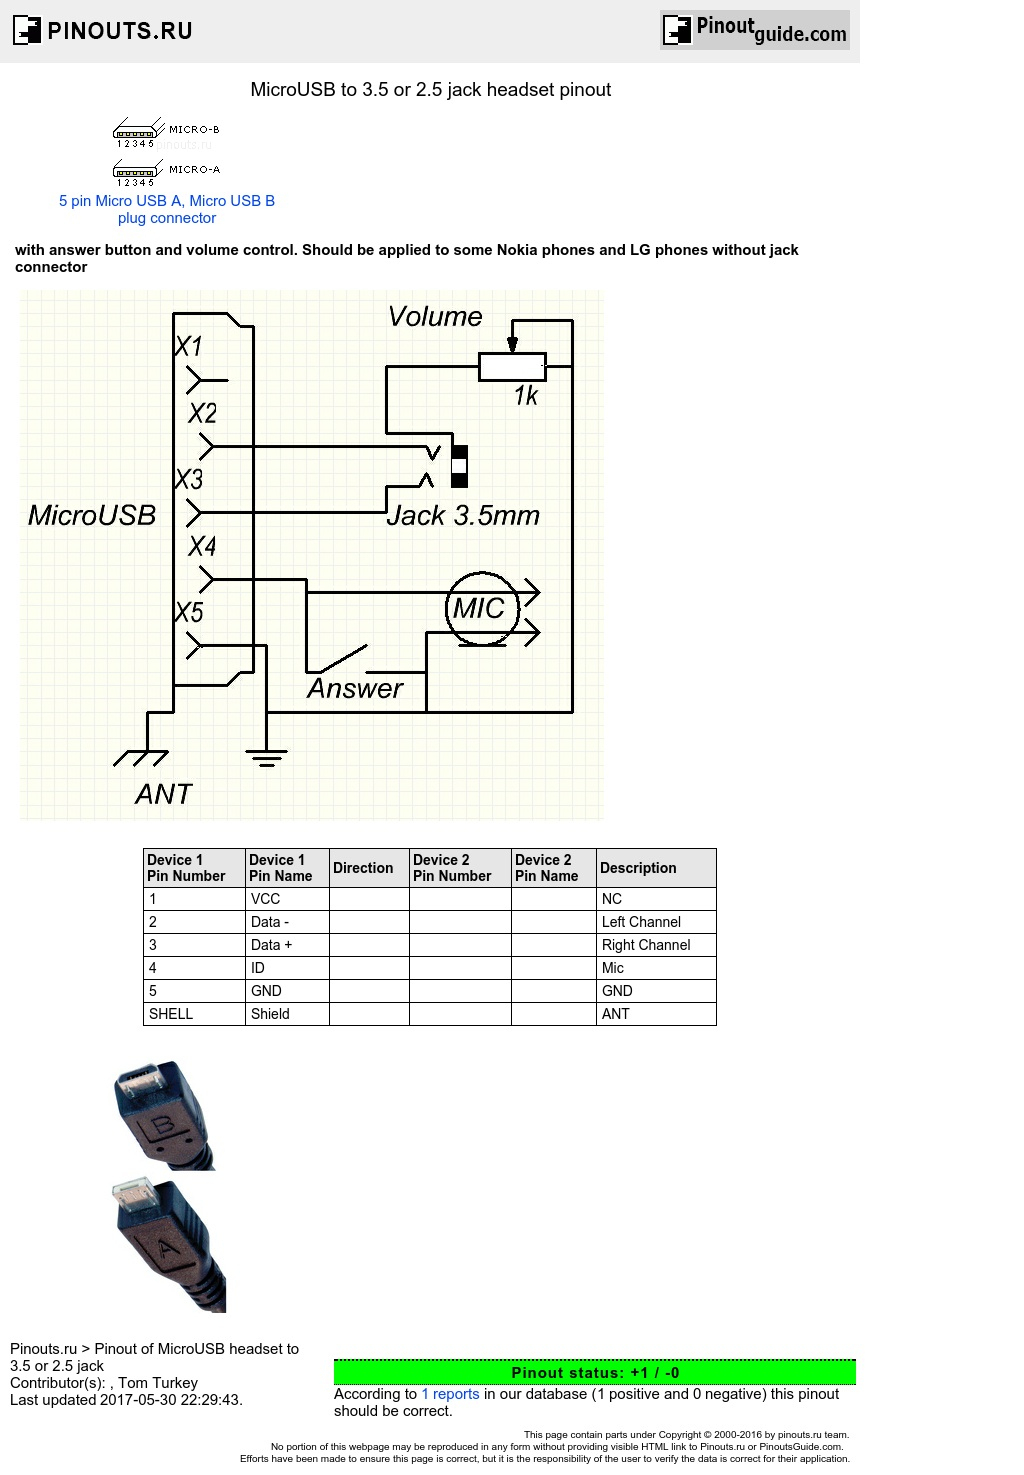 Microusb To 3.5 Or 2.5 Jack Headset Pinout Diagram @ Pinoutguide - Usb To Micro Usb Wiring Diagram